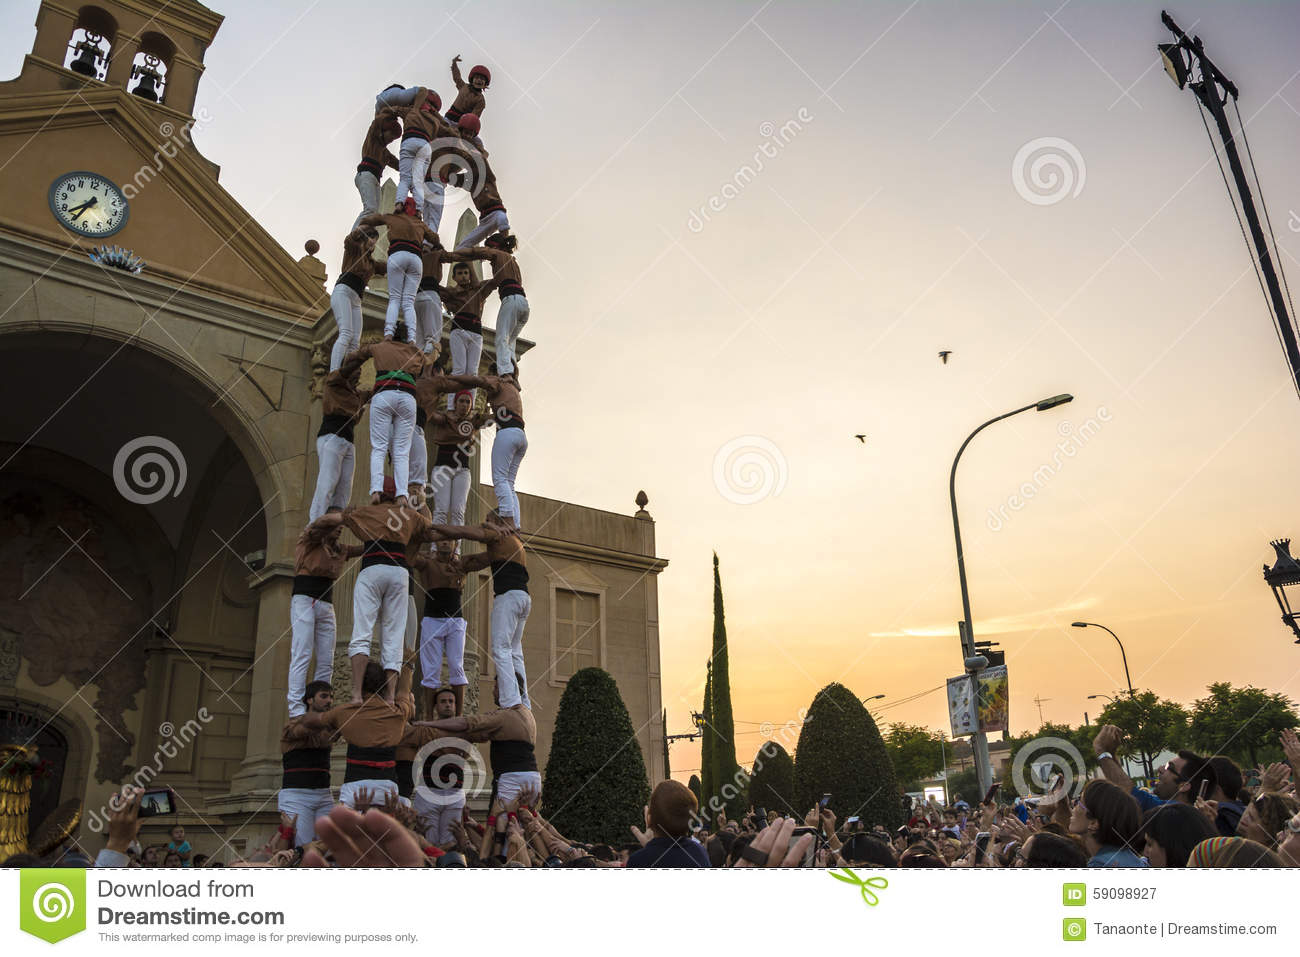 Reus Spain  city pictures gallery : Reus, Spain September 25, 2014: Castells Performance, castell is a ...